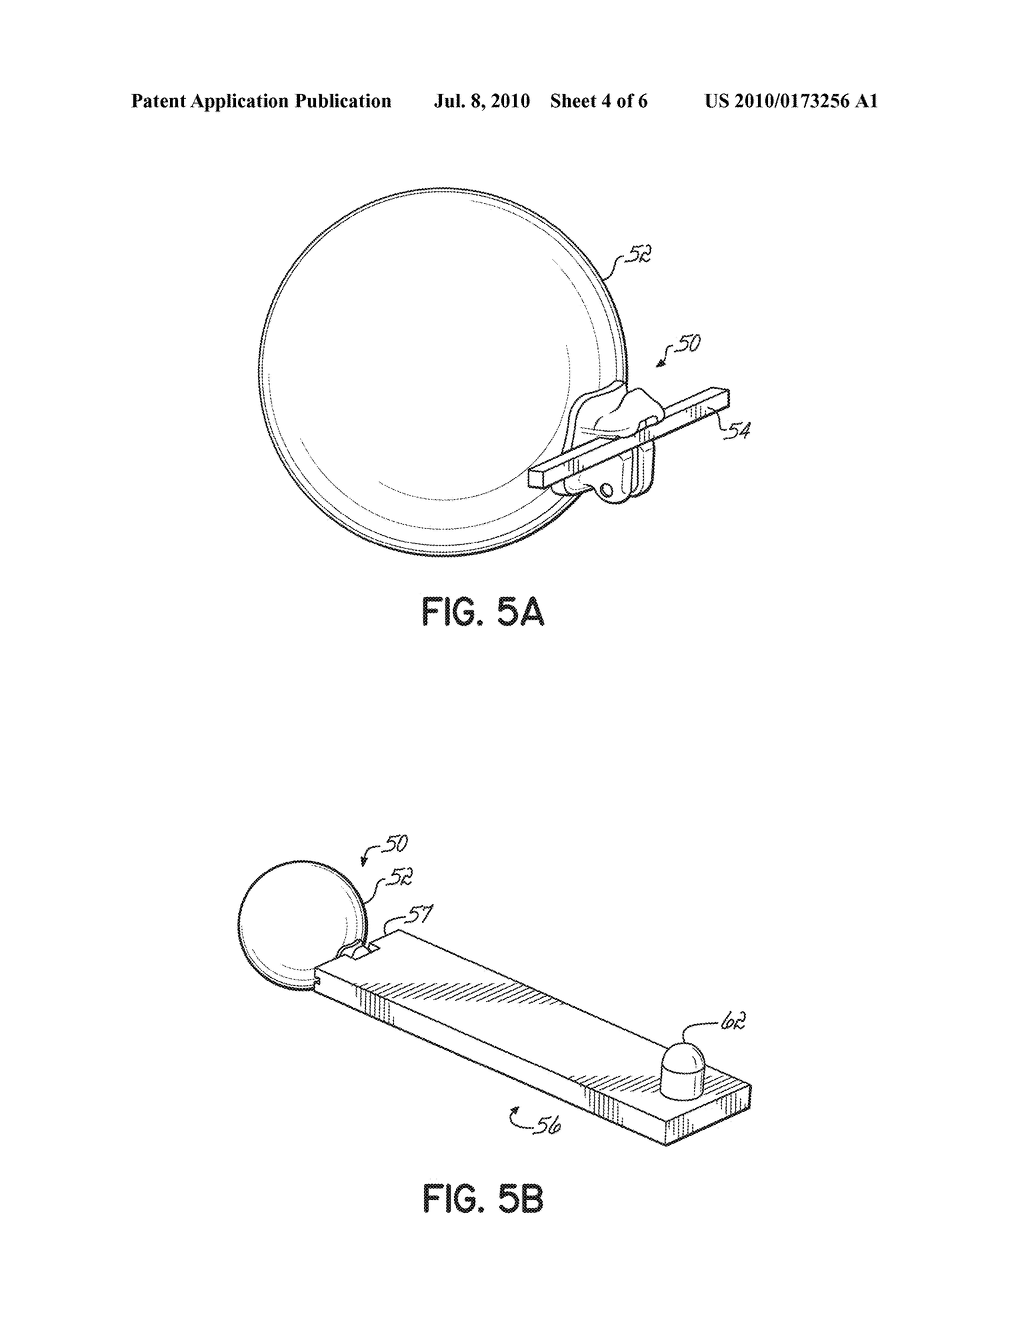 Surface Treated Polycrystalline Ceramic Orthodontic Bracket and Method of Making Same - diagram, schematic, and image 05